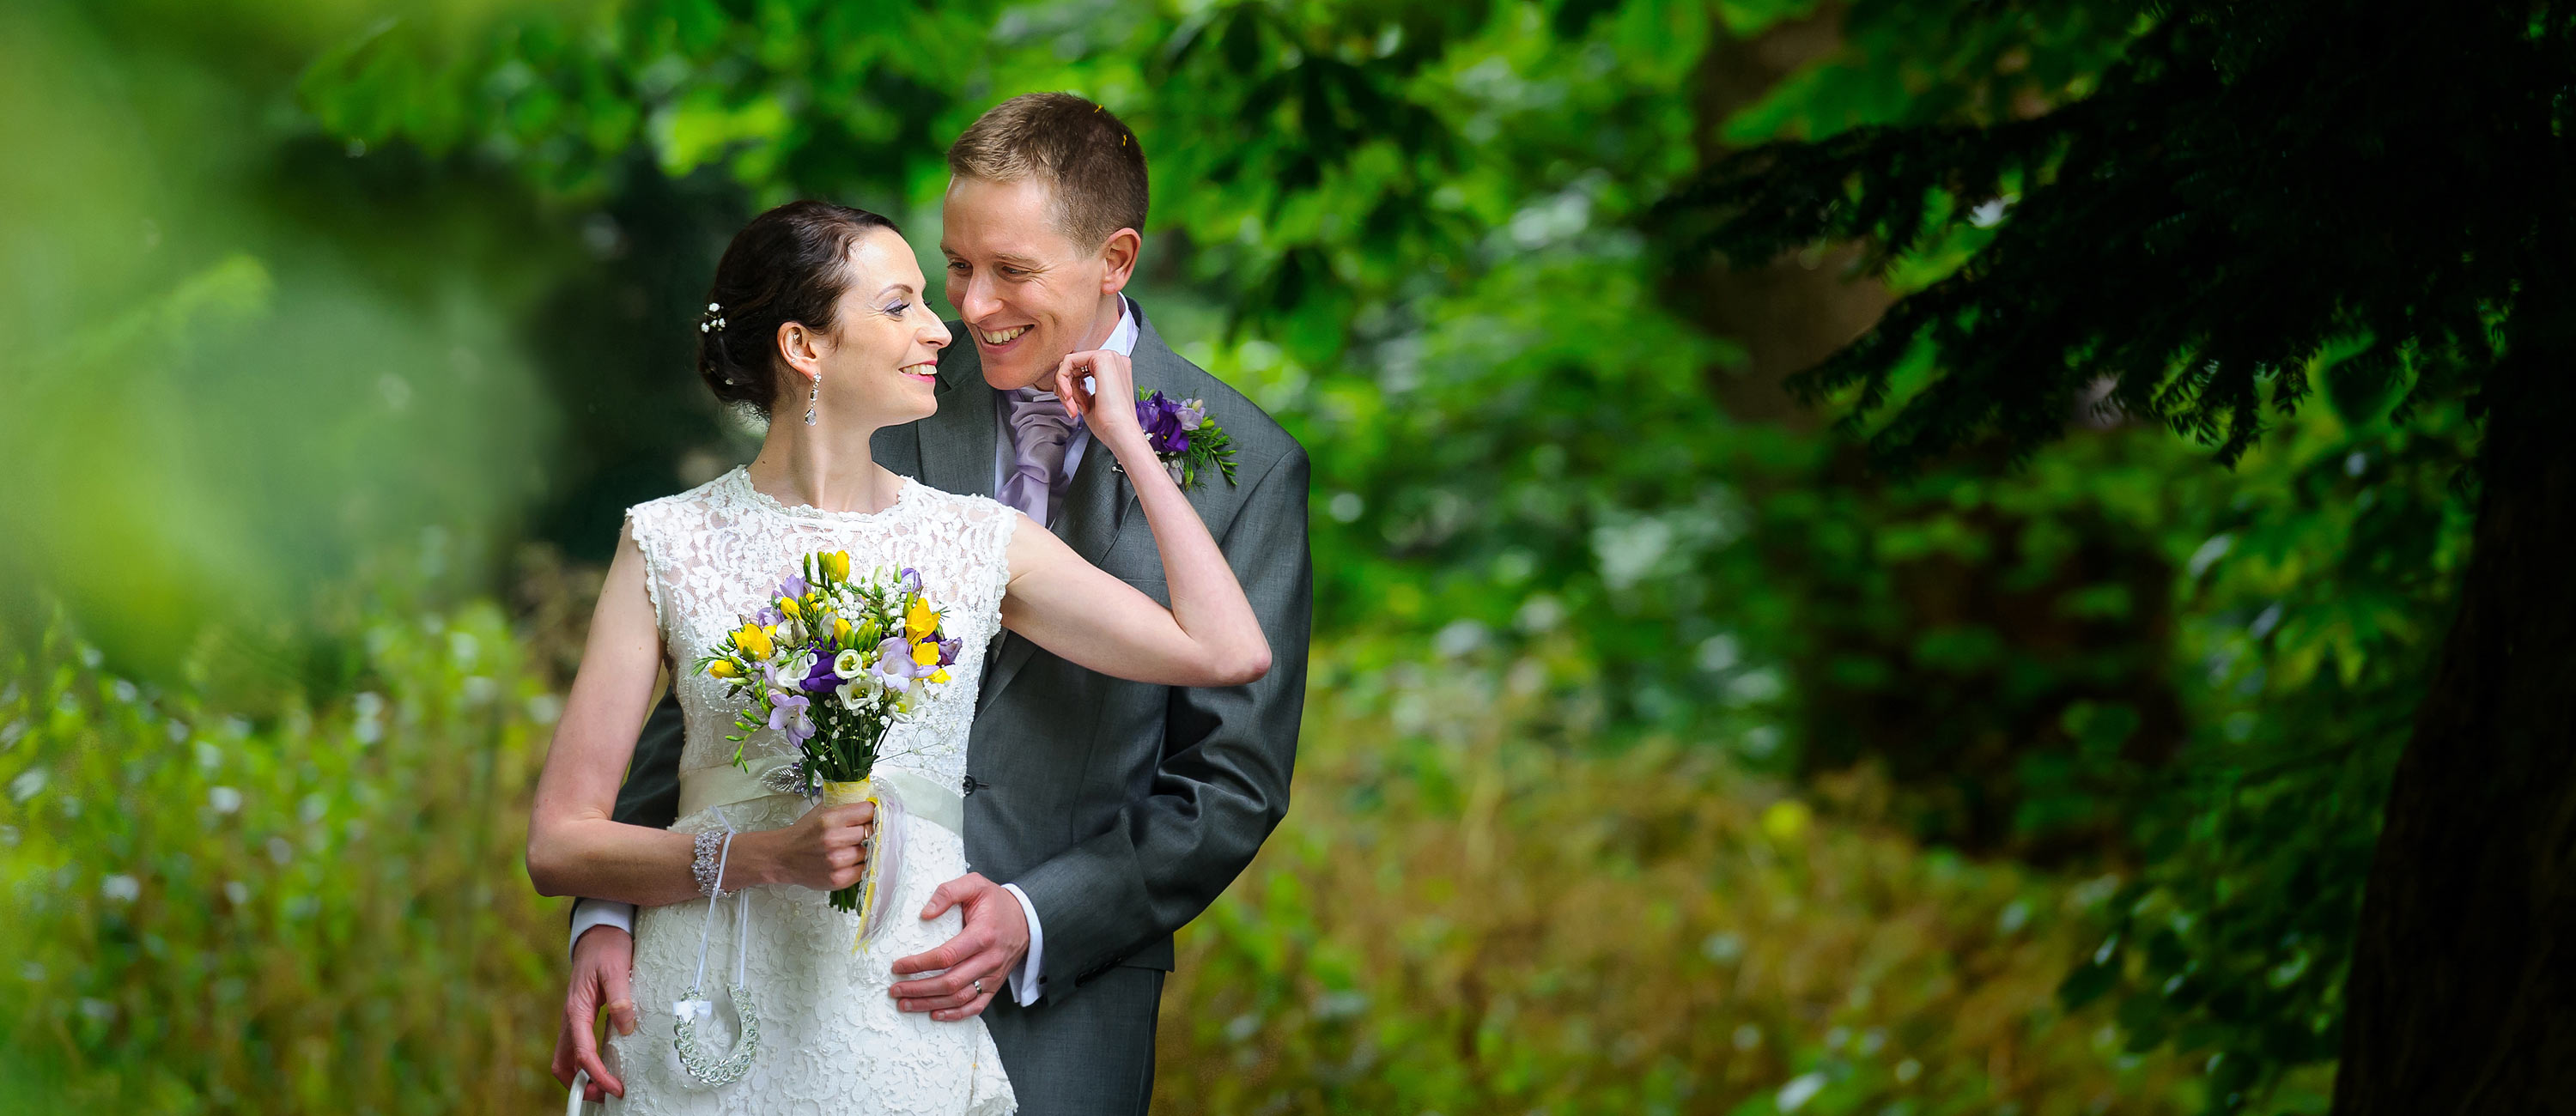 recommended wedding photographer dunstable